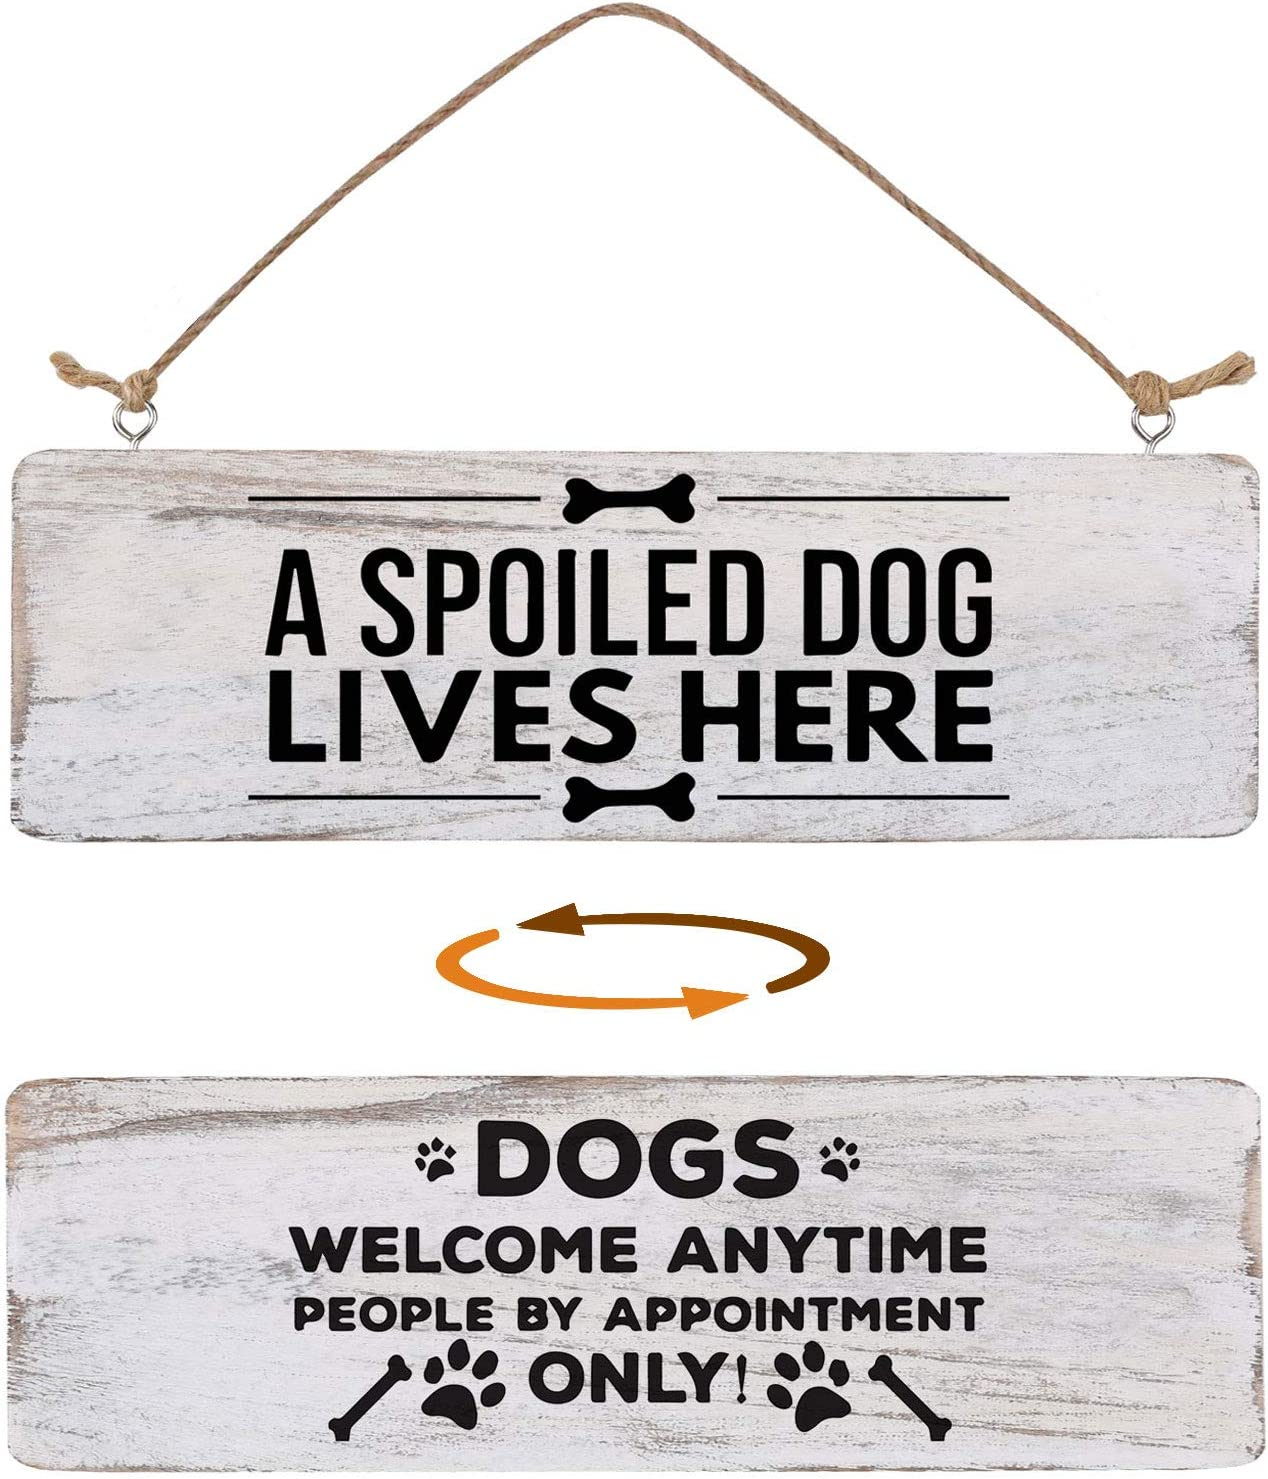 Home Decor Signs Double Sided, Farmhouse Dog Signs for Home Decor Wall, Home Sign Wall Decor for Livingroom Inspirational Rustic Wooden Wall Art Decor Home Decor